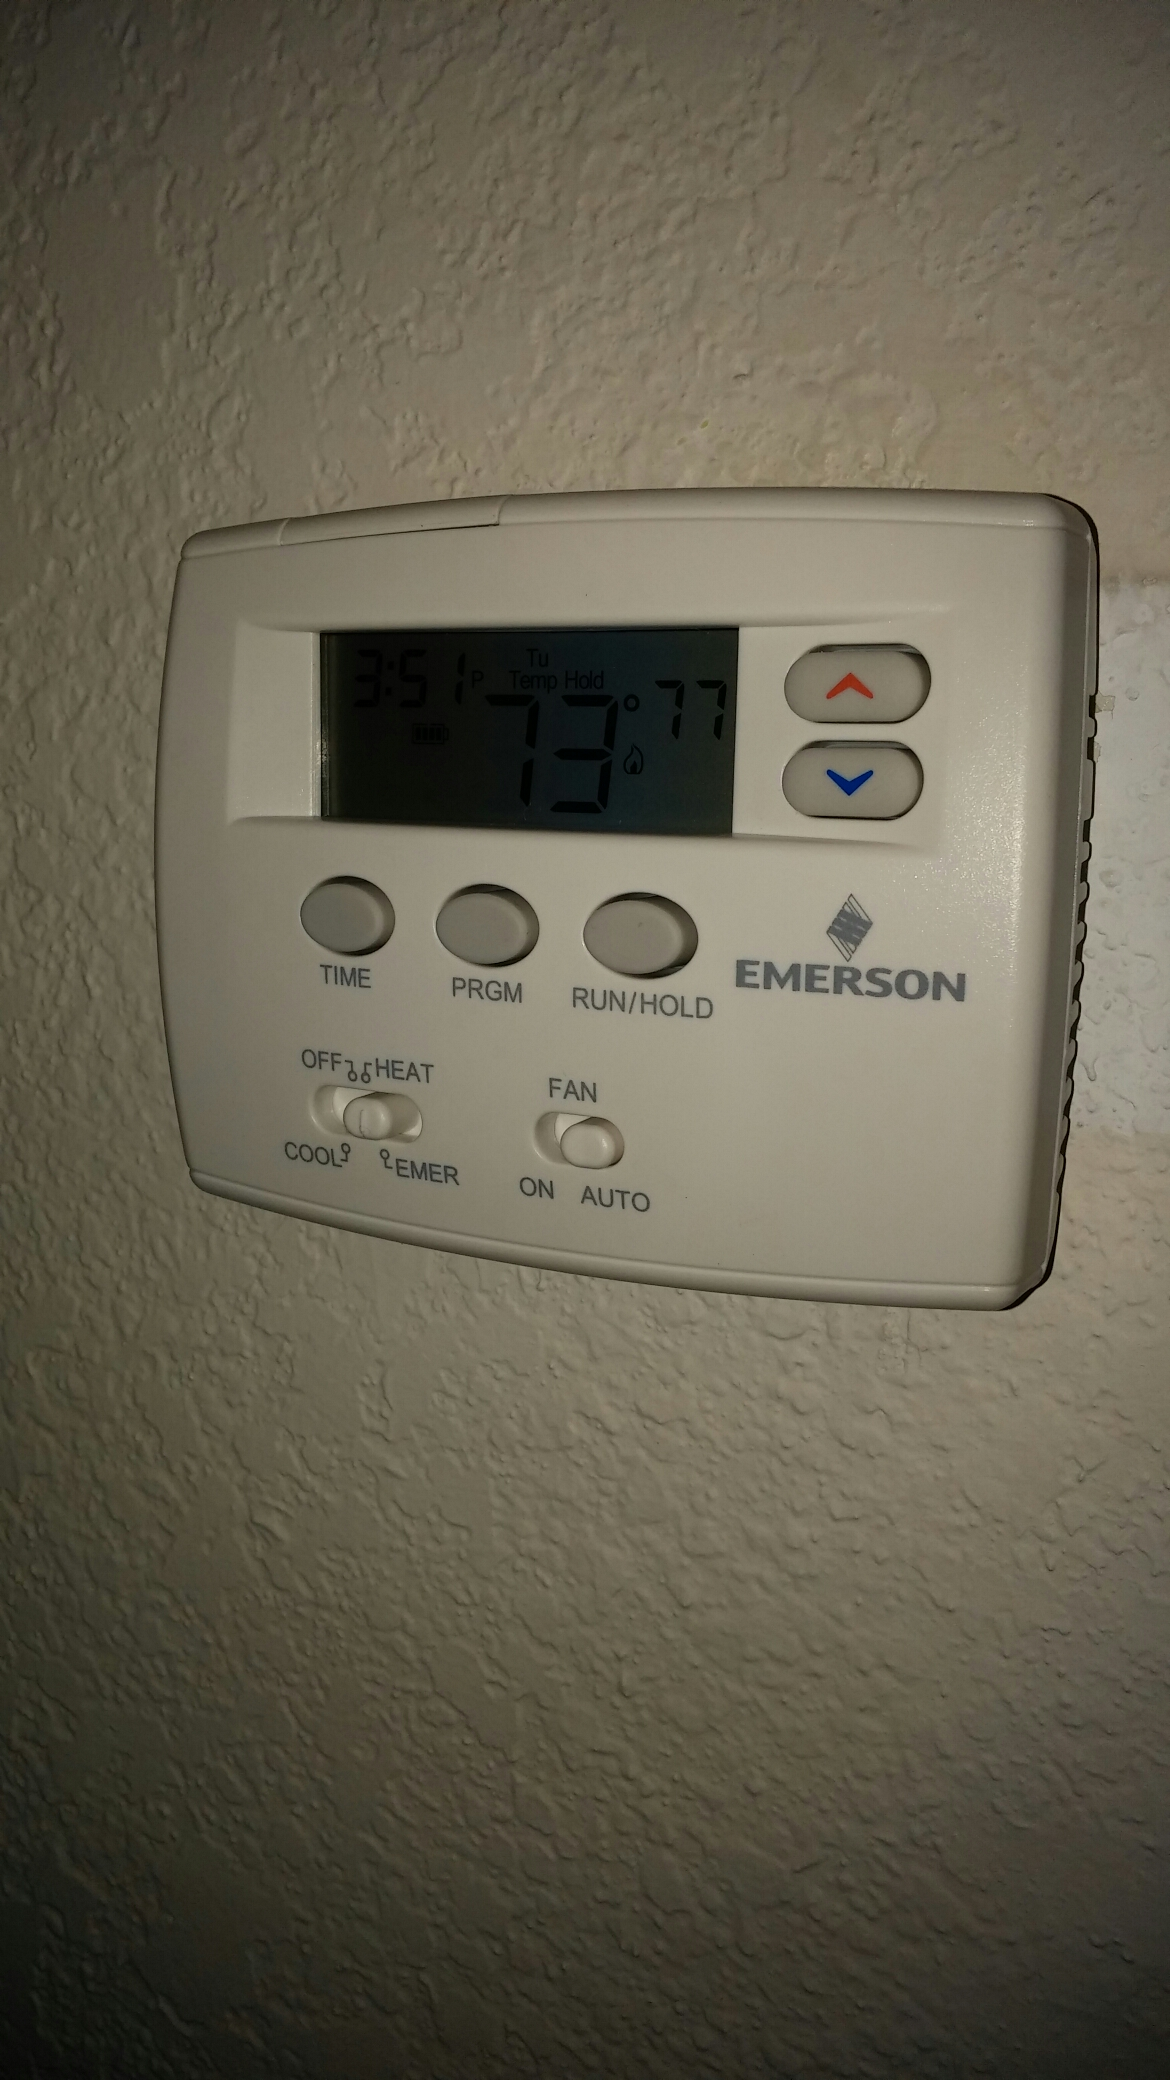 North Richland Hills, TX - Change thermastat